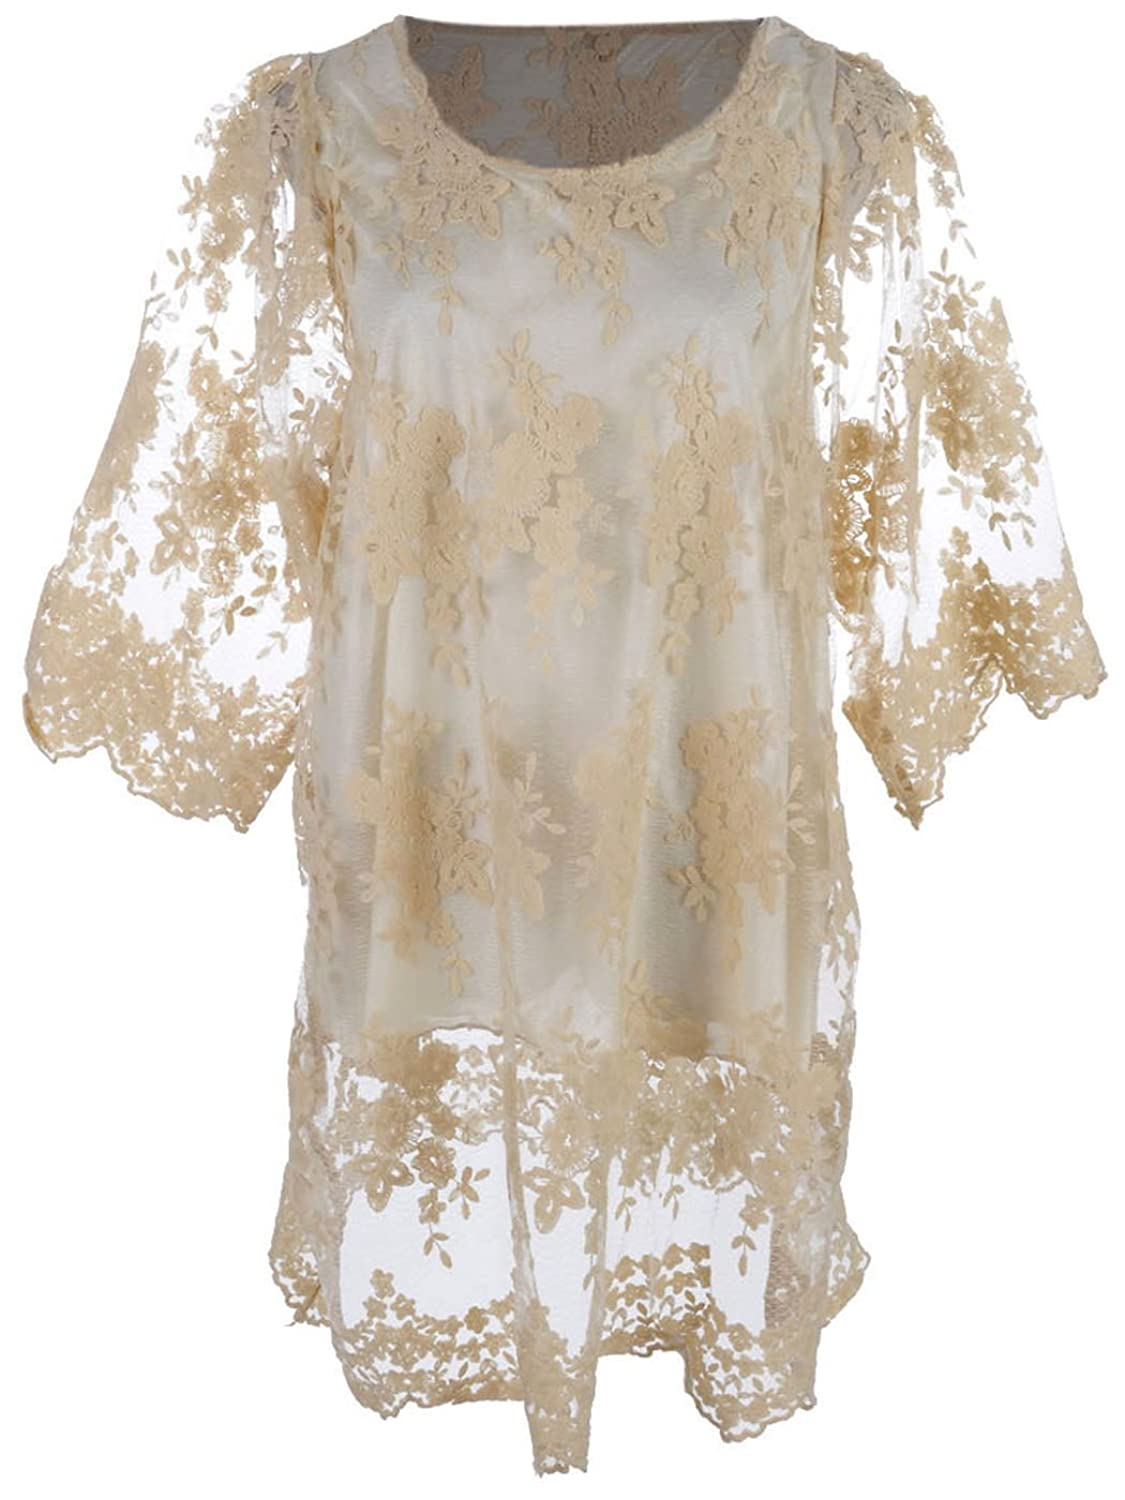 Anna-Kaci S/M Fit Beige Three Quarter Sleeves Antique Inspired Floral Lace Dress